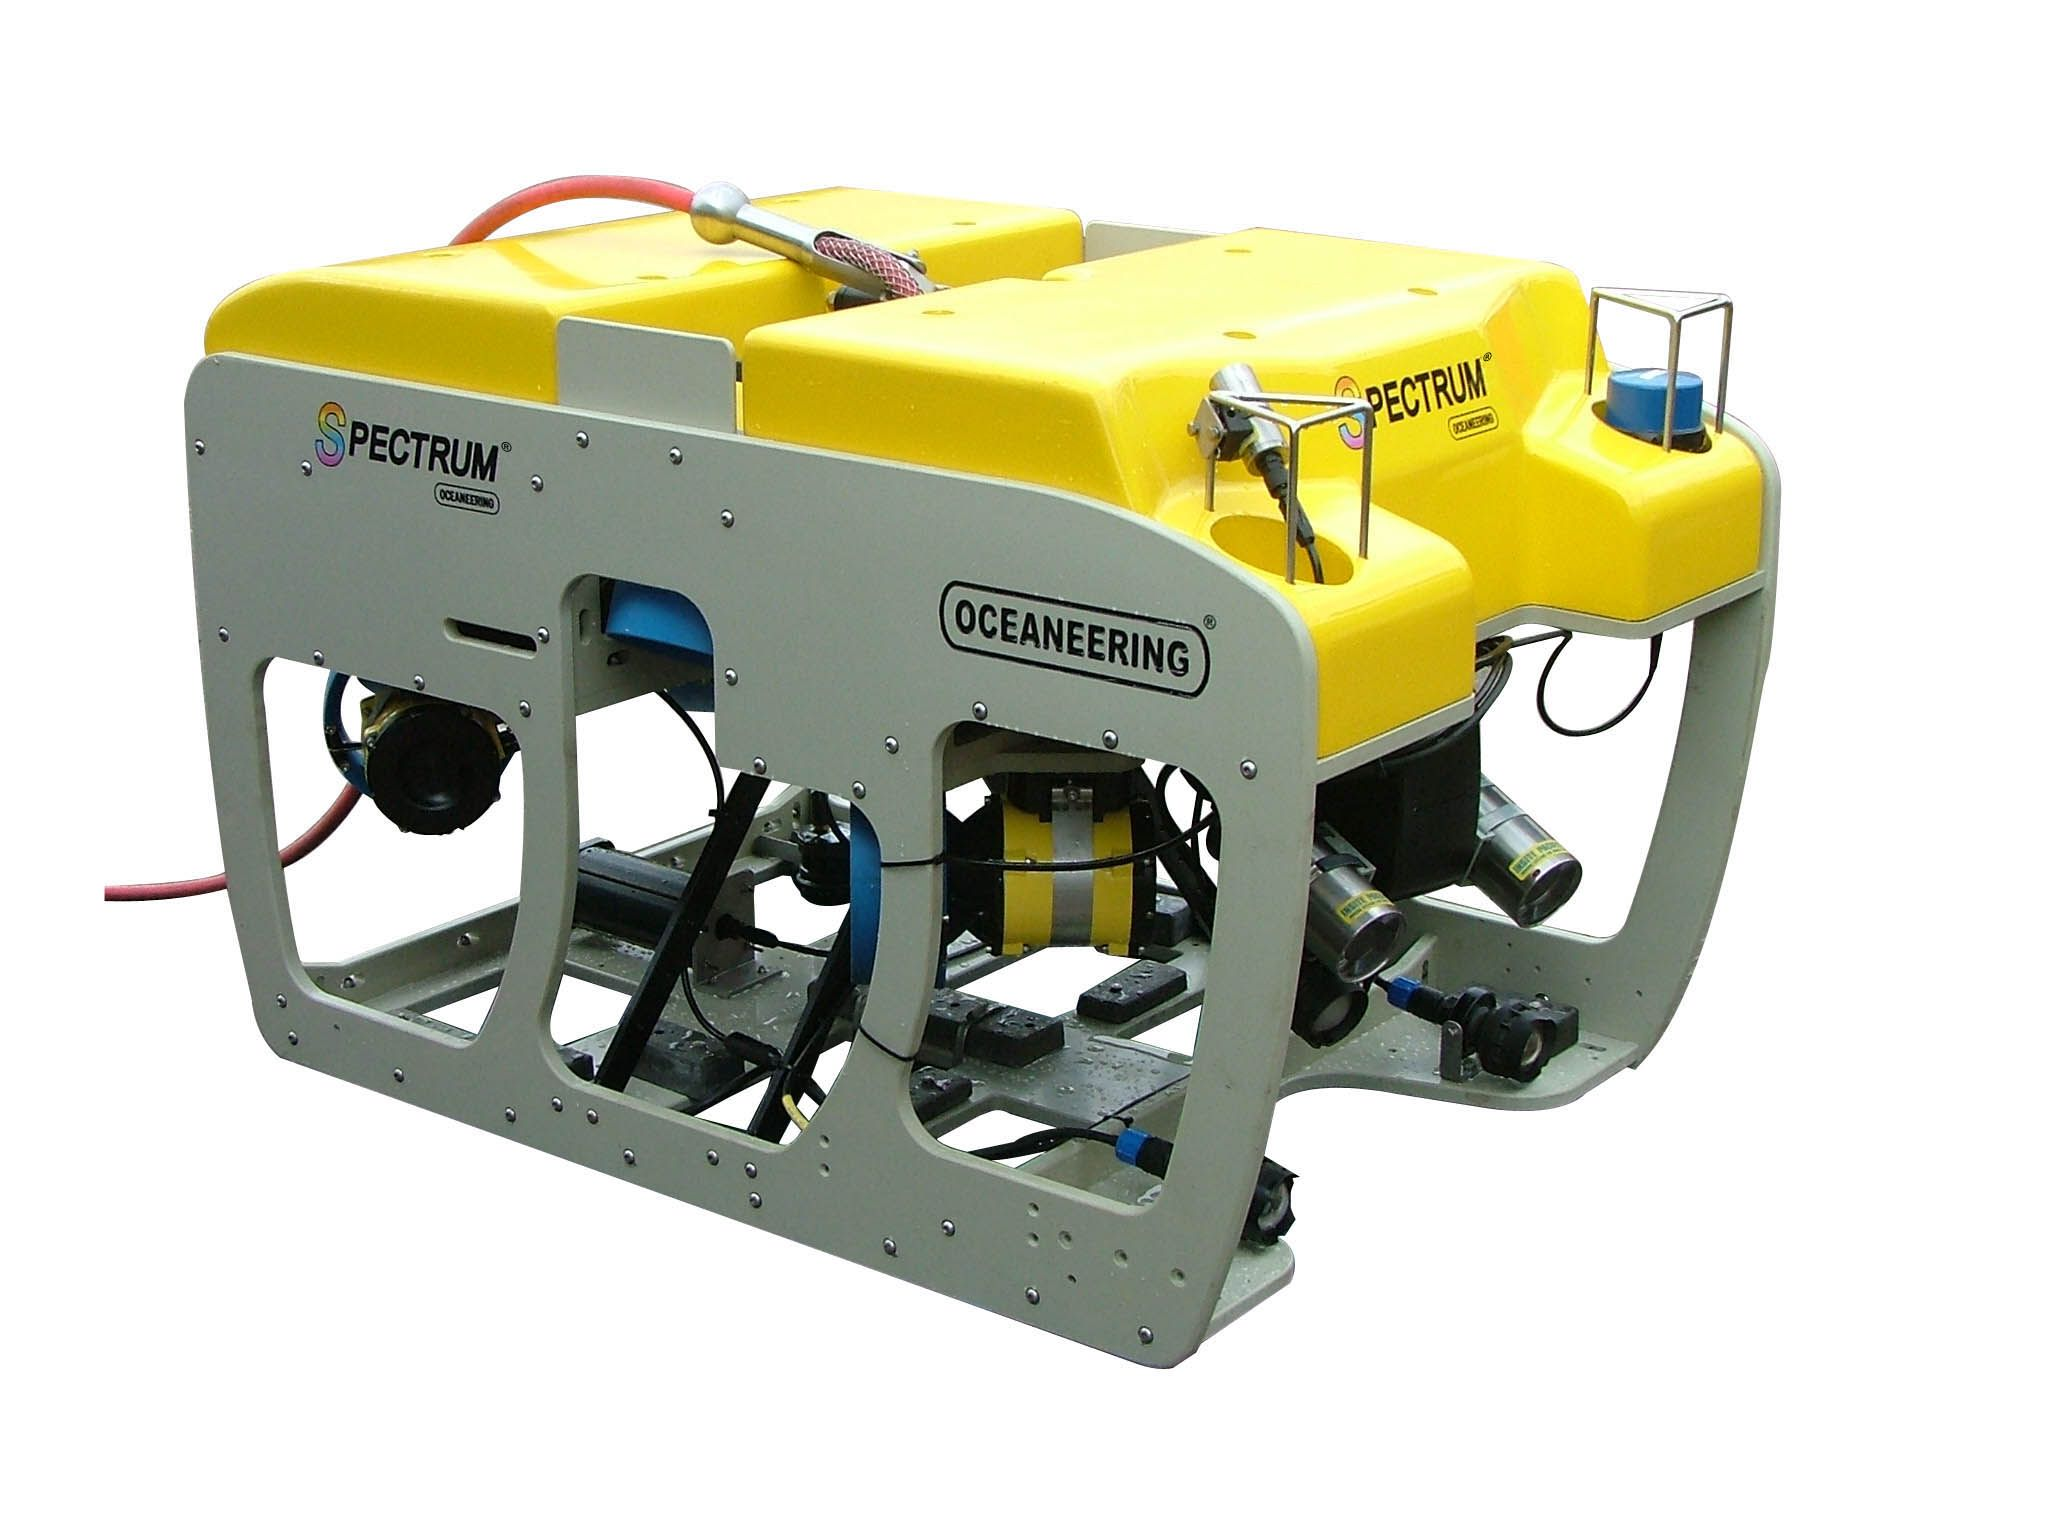 Remotely-operated underwater vehicles (ROVs) Features, types, advantages and disadvantages